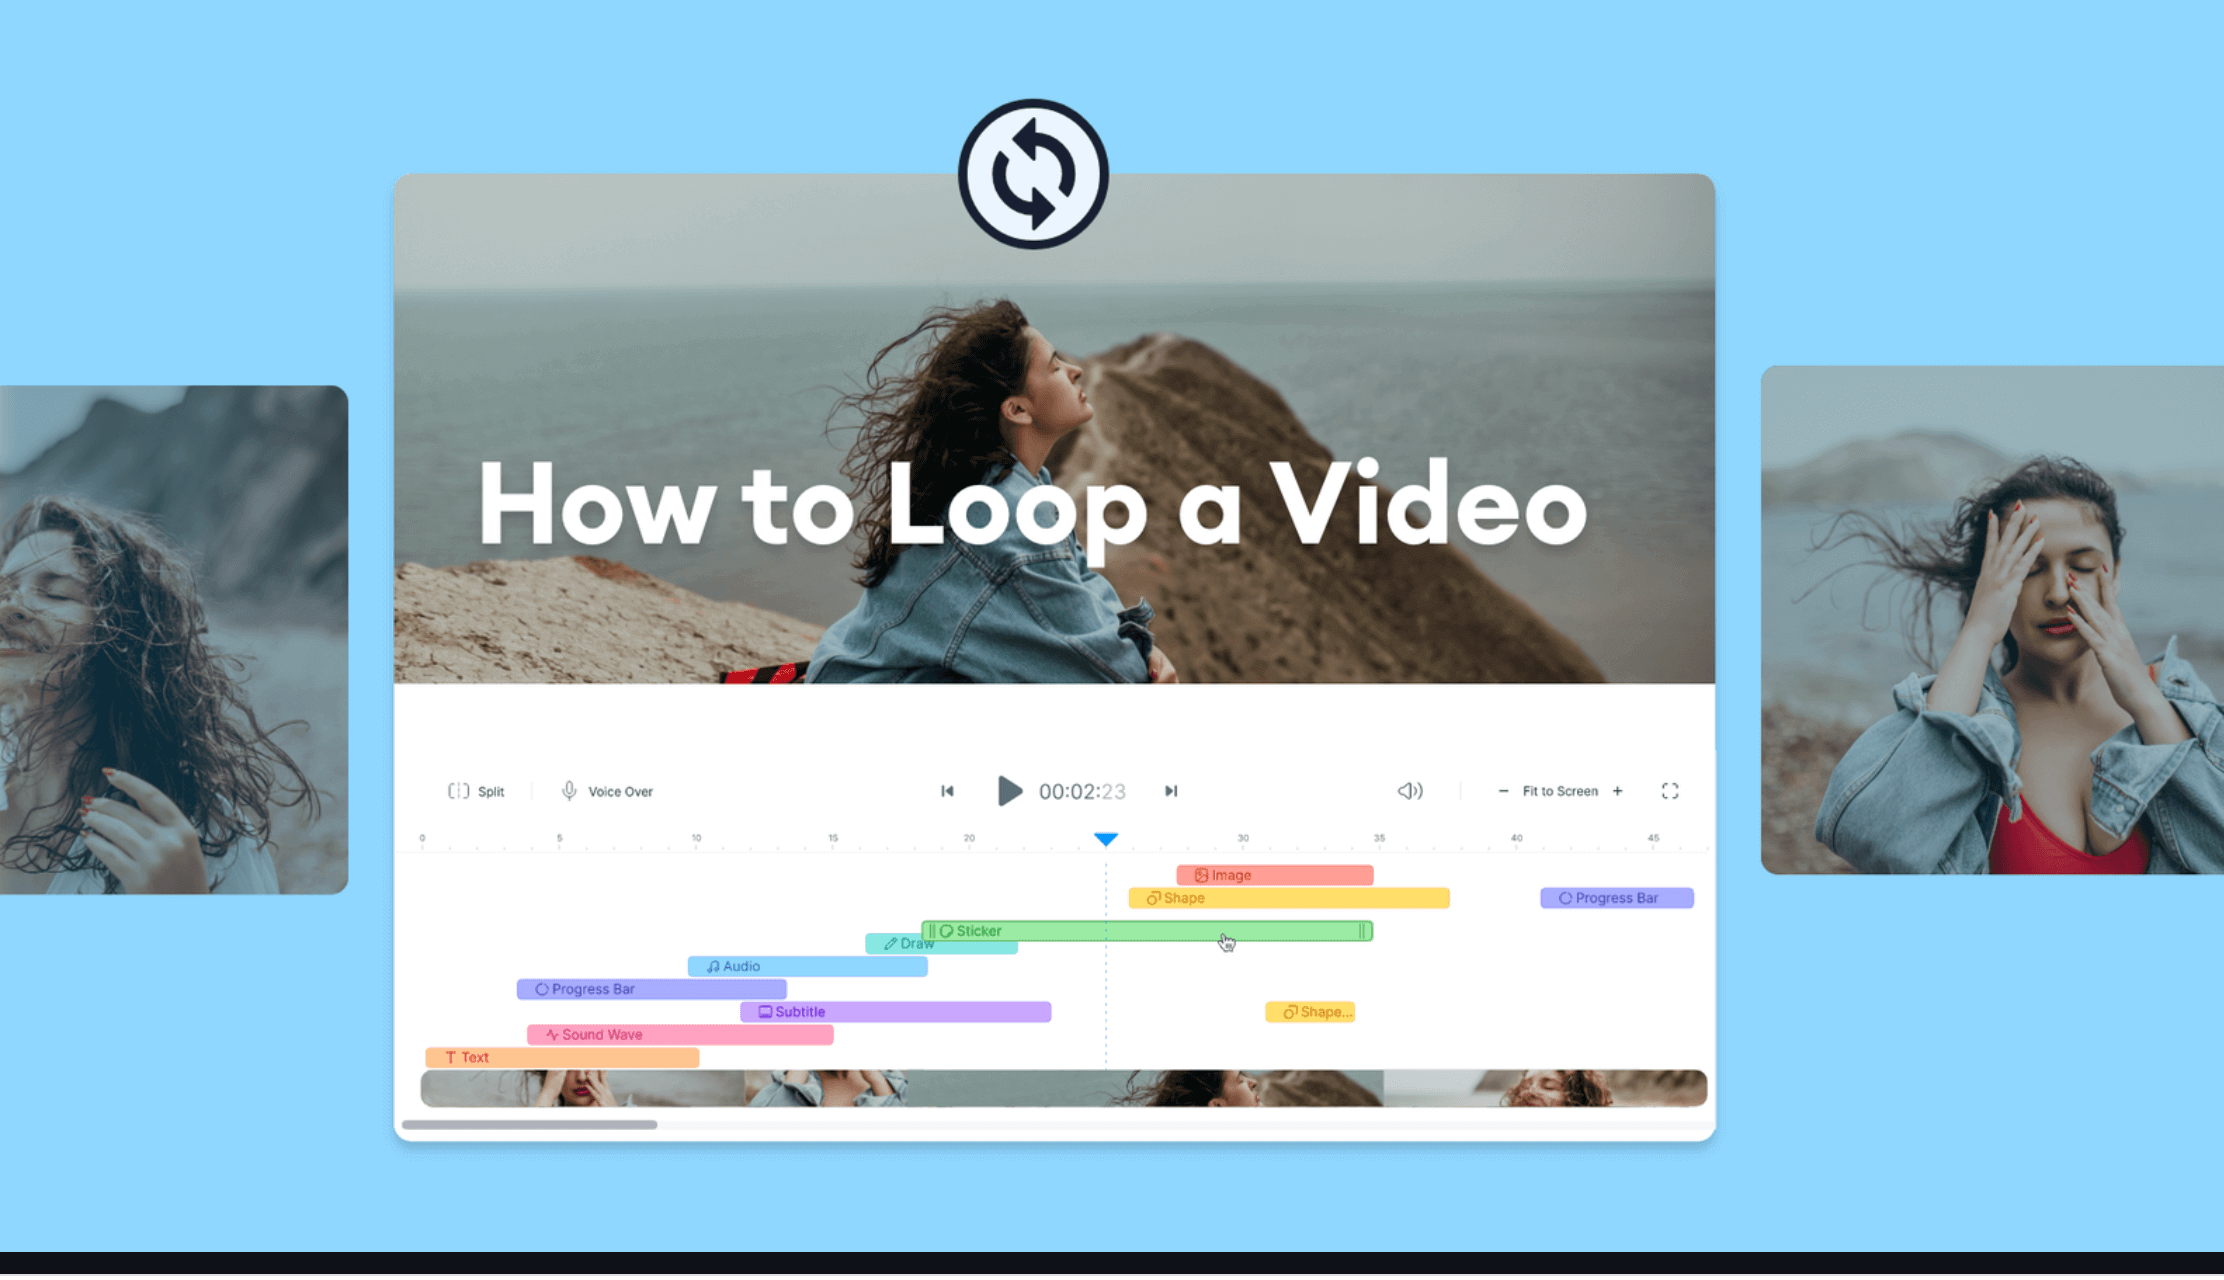 How To Loop a Video For Free (Super Quick And Easy)